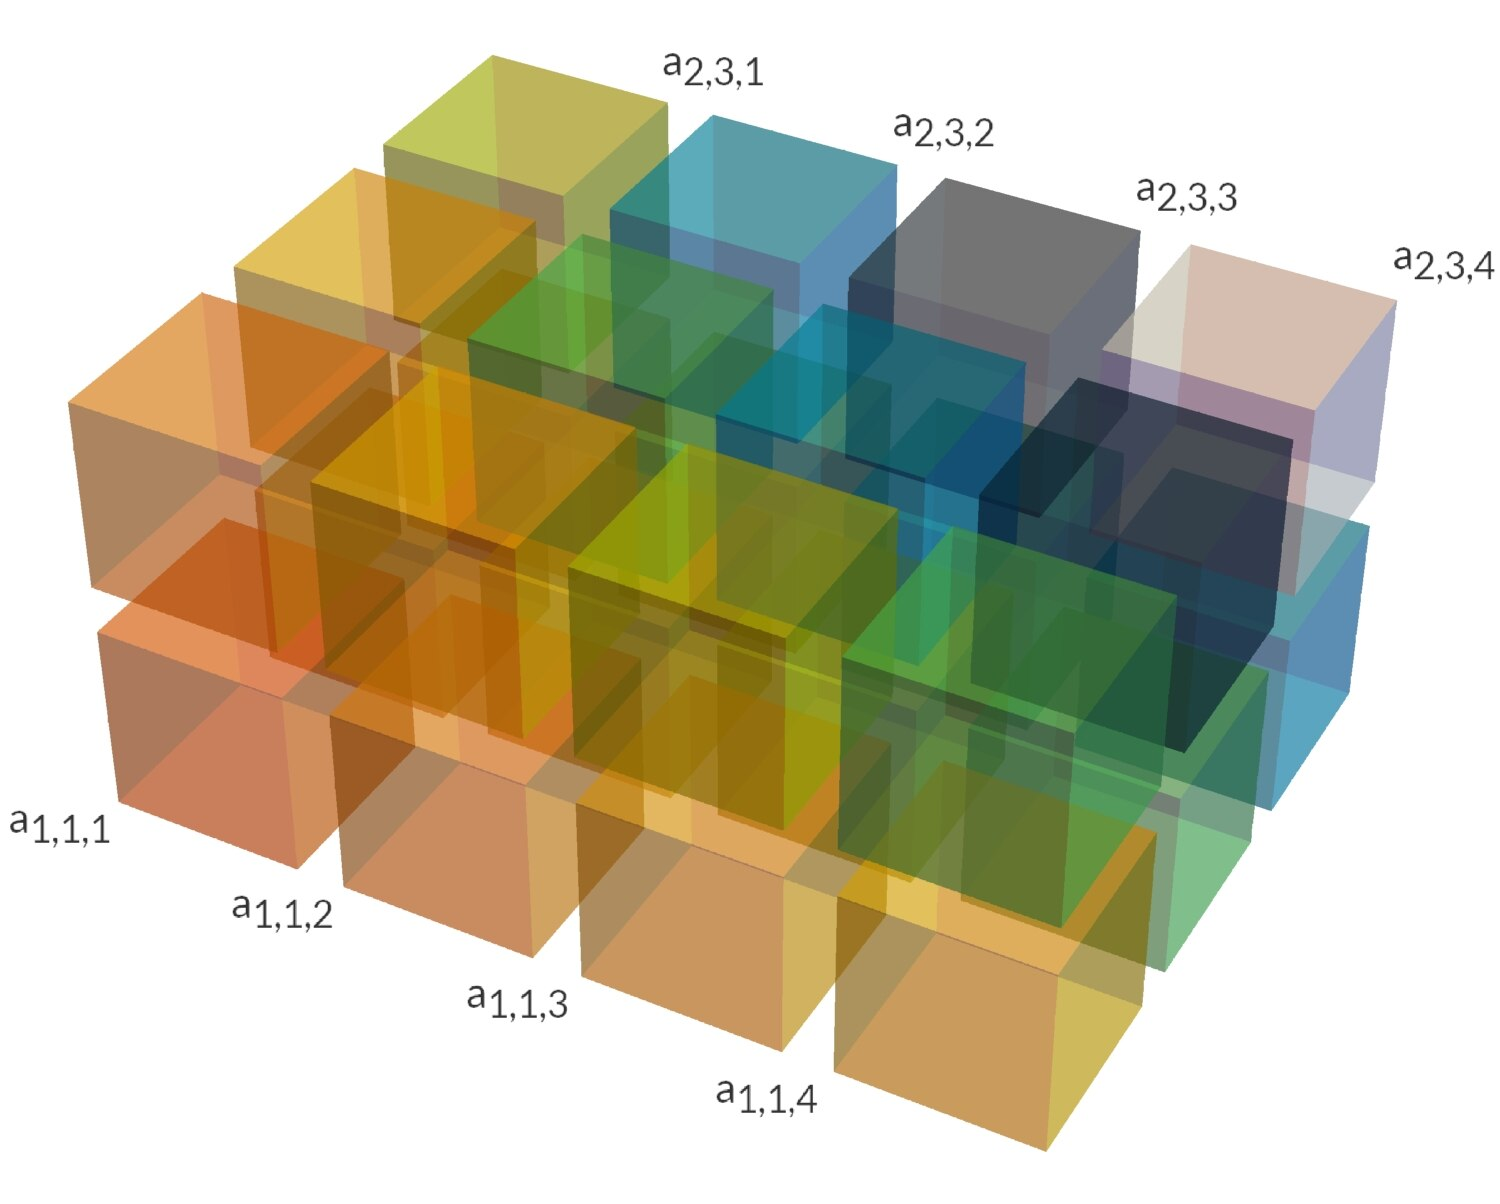 image of 3D view of transposed tensor